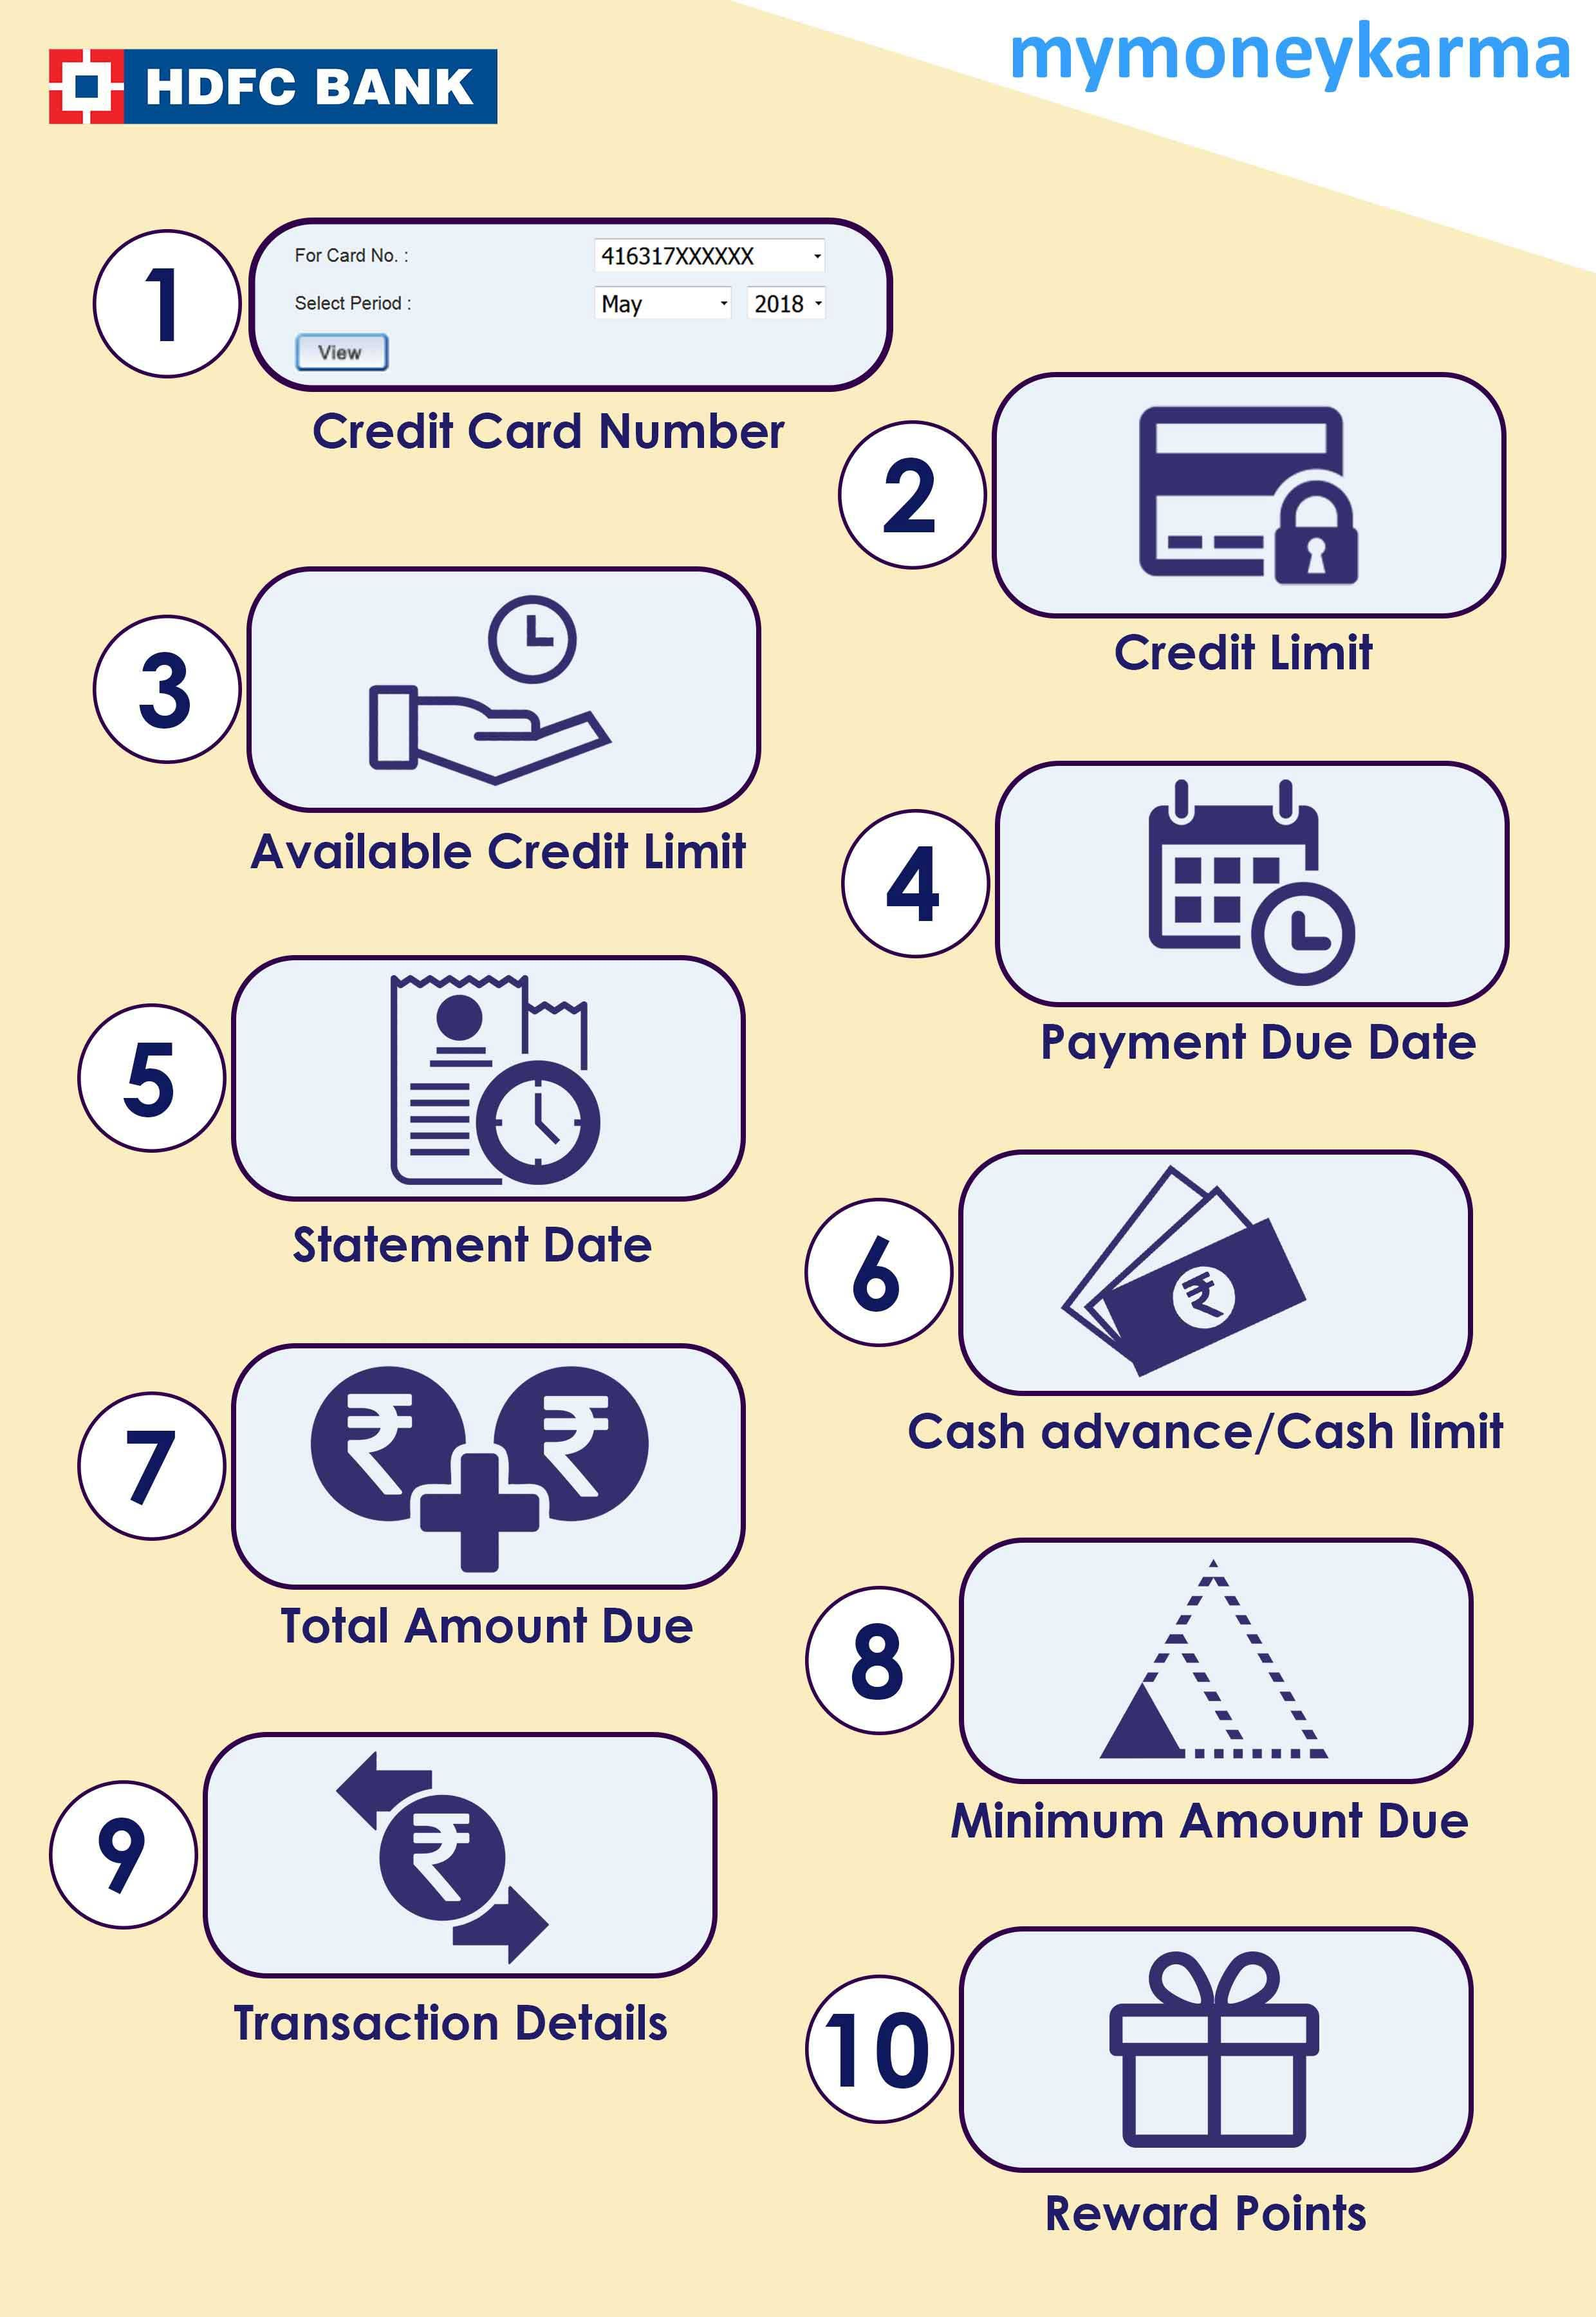 How To Get Hdfc Credit Card Net Banking Login Id